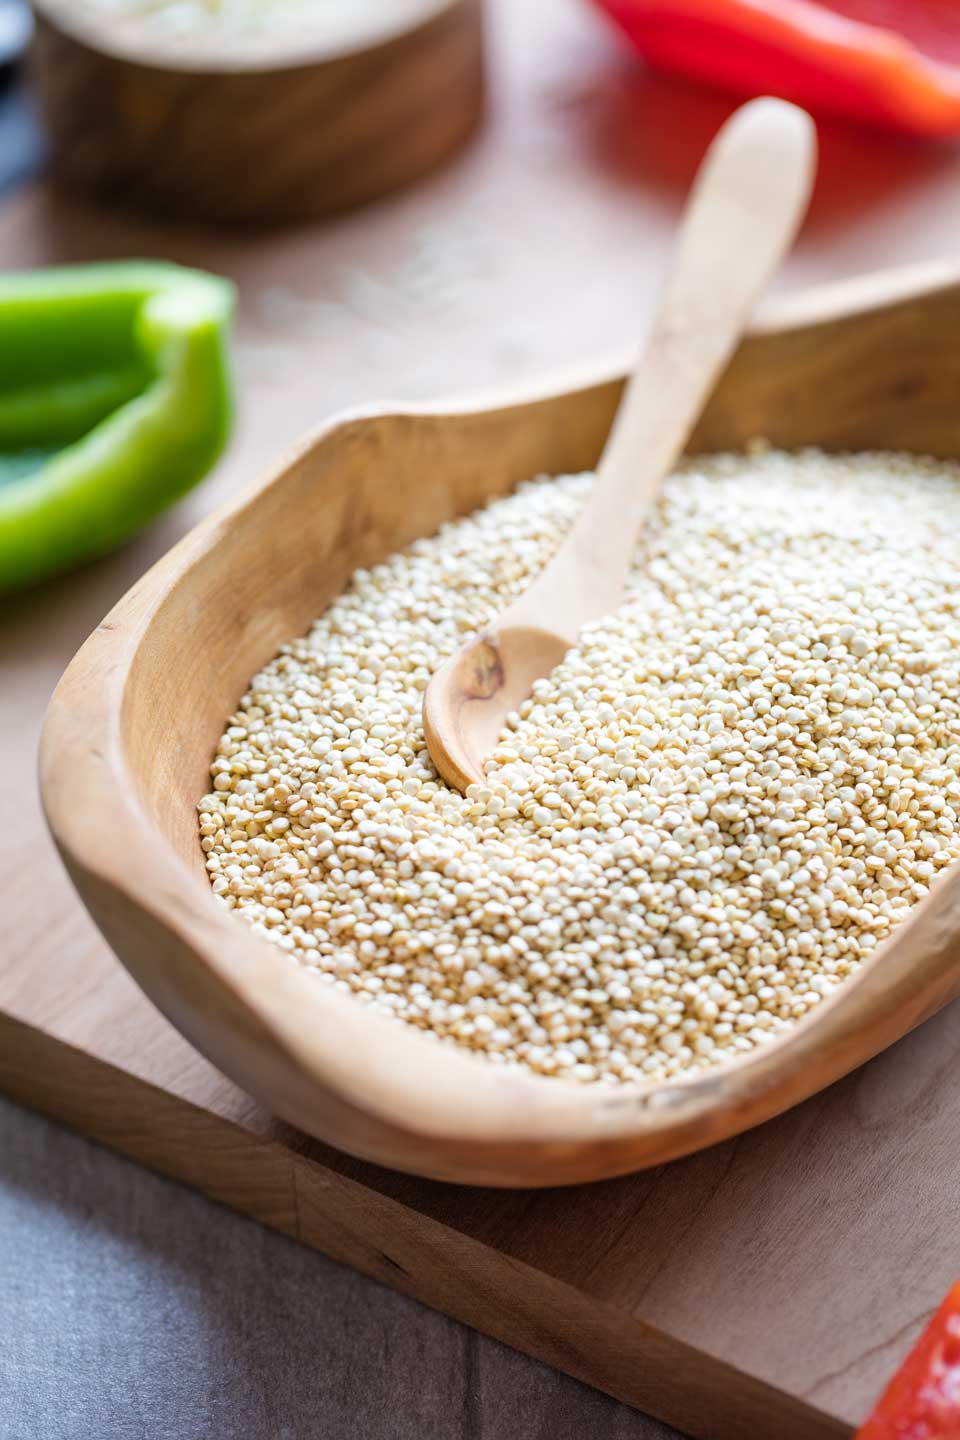 Closeup of a wooden bowl full of uncooked quinoa, with a tiny wooden spoon dipped into it.